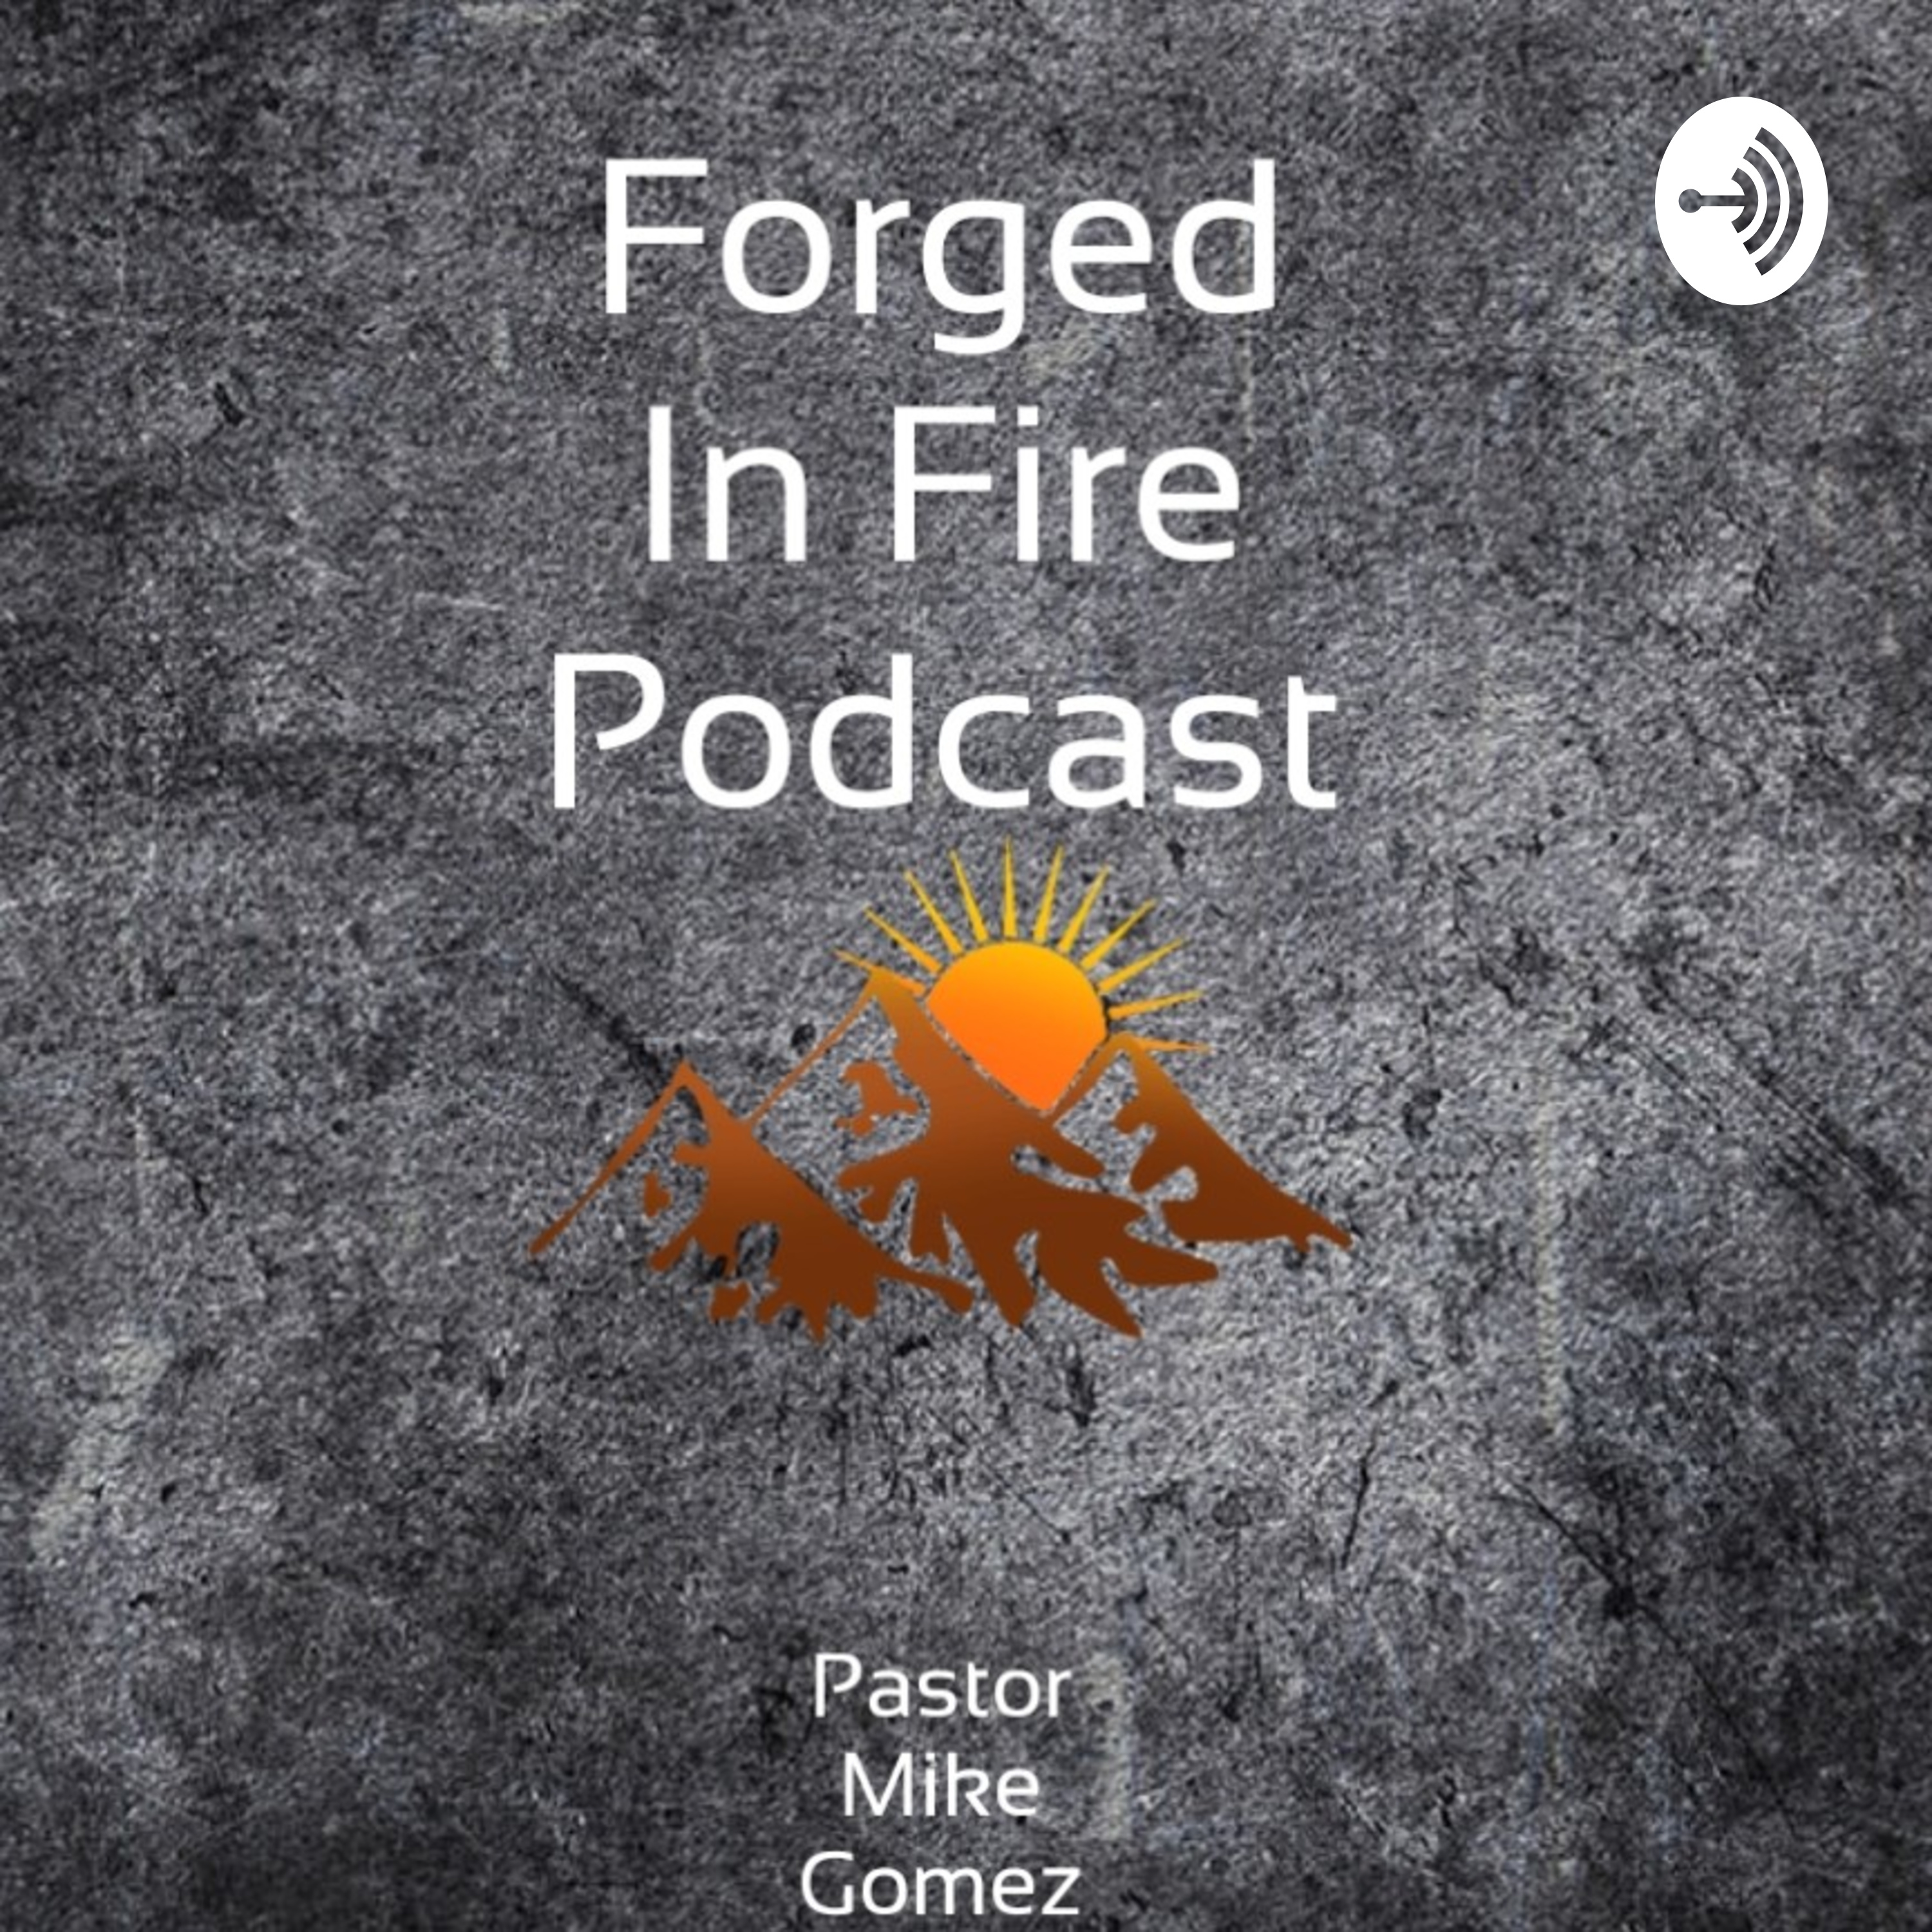 Forged In Fire Podcast | Listen via Stitcher for Podcasts